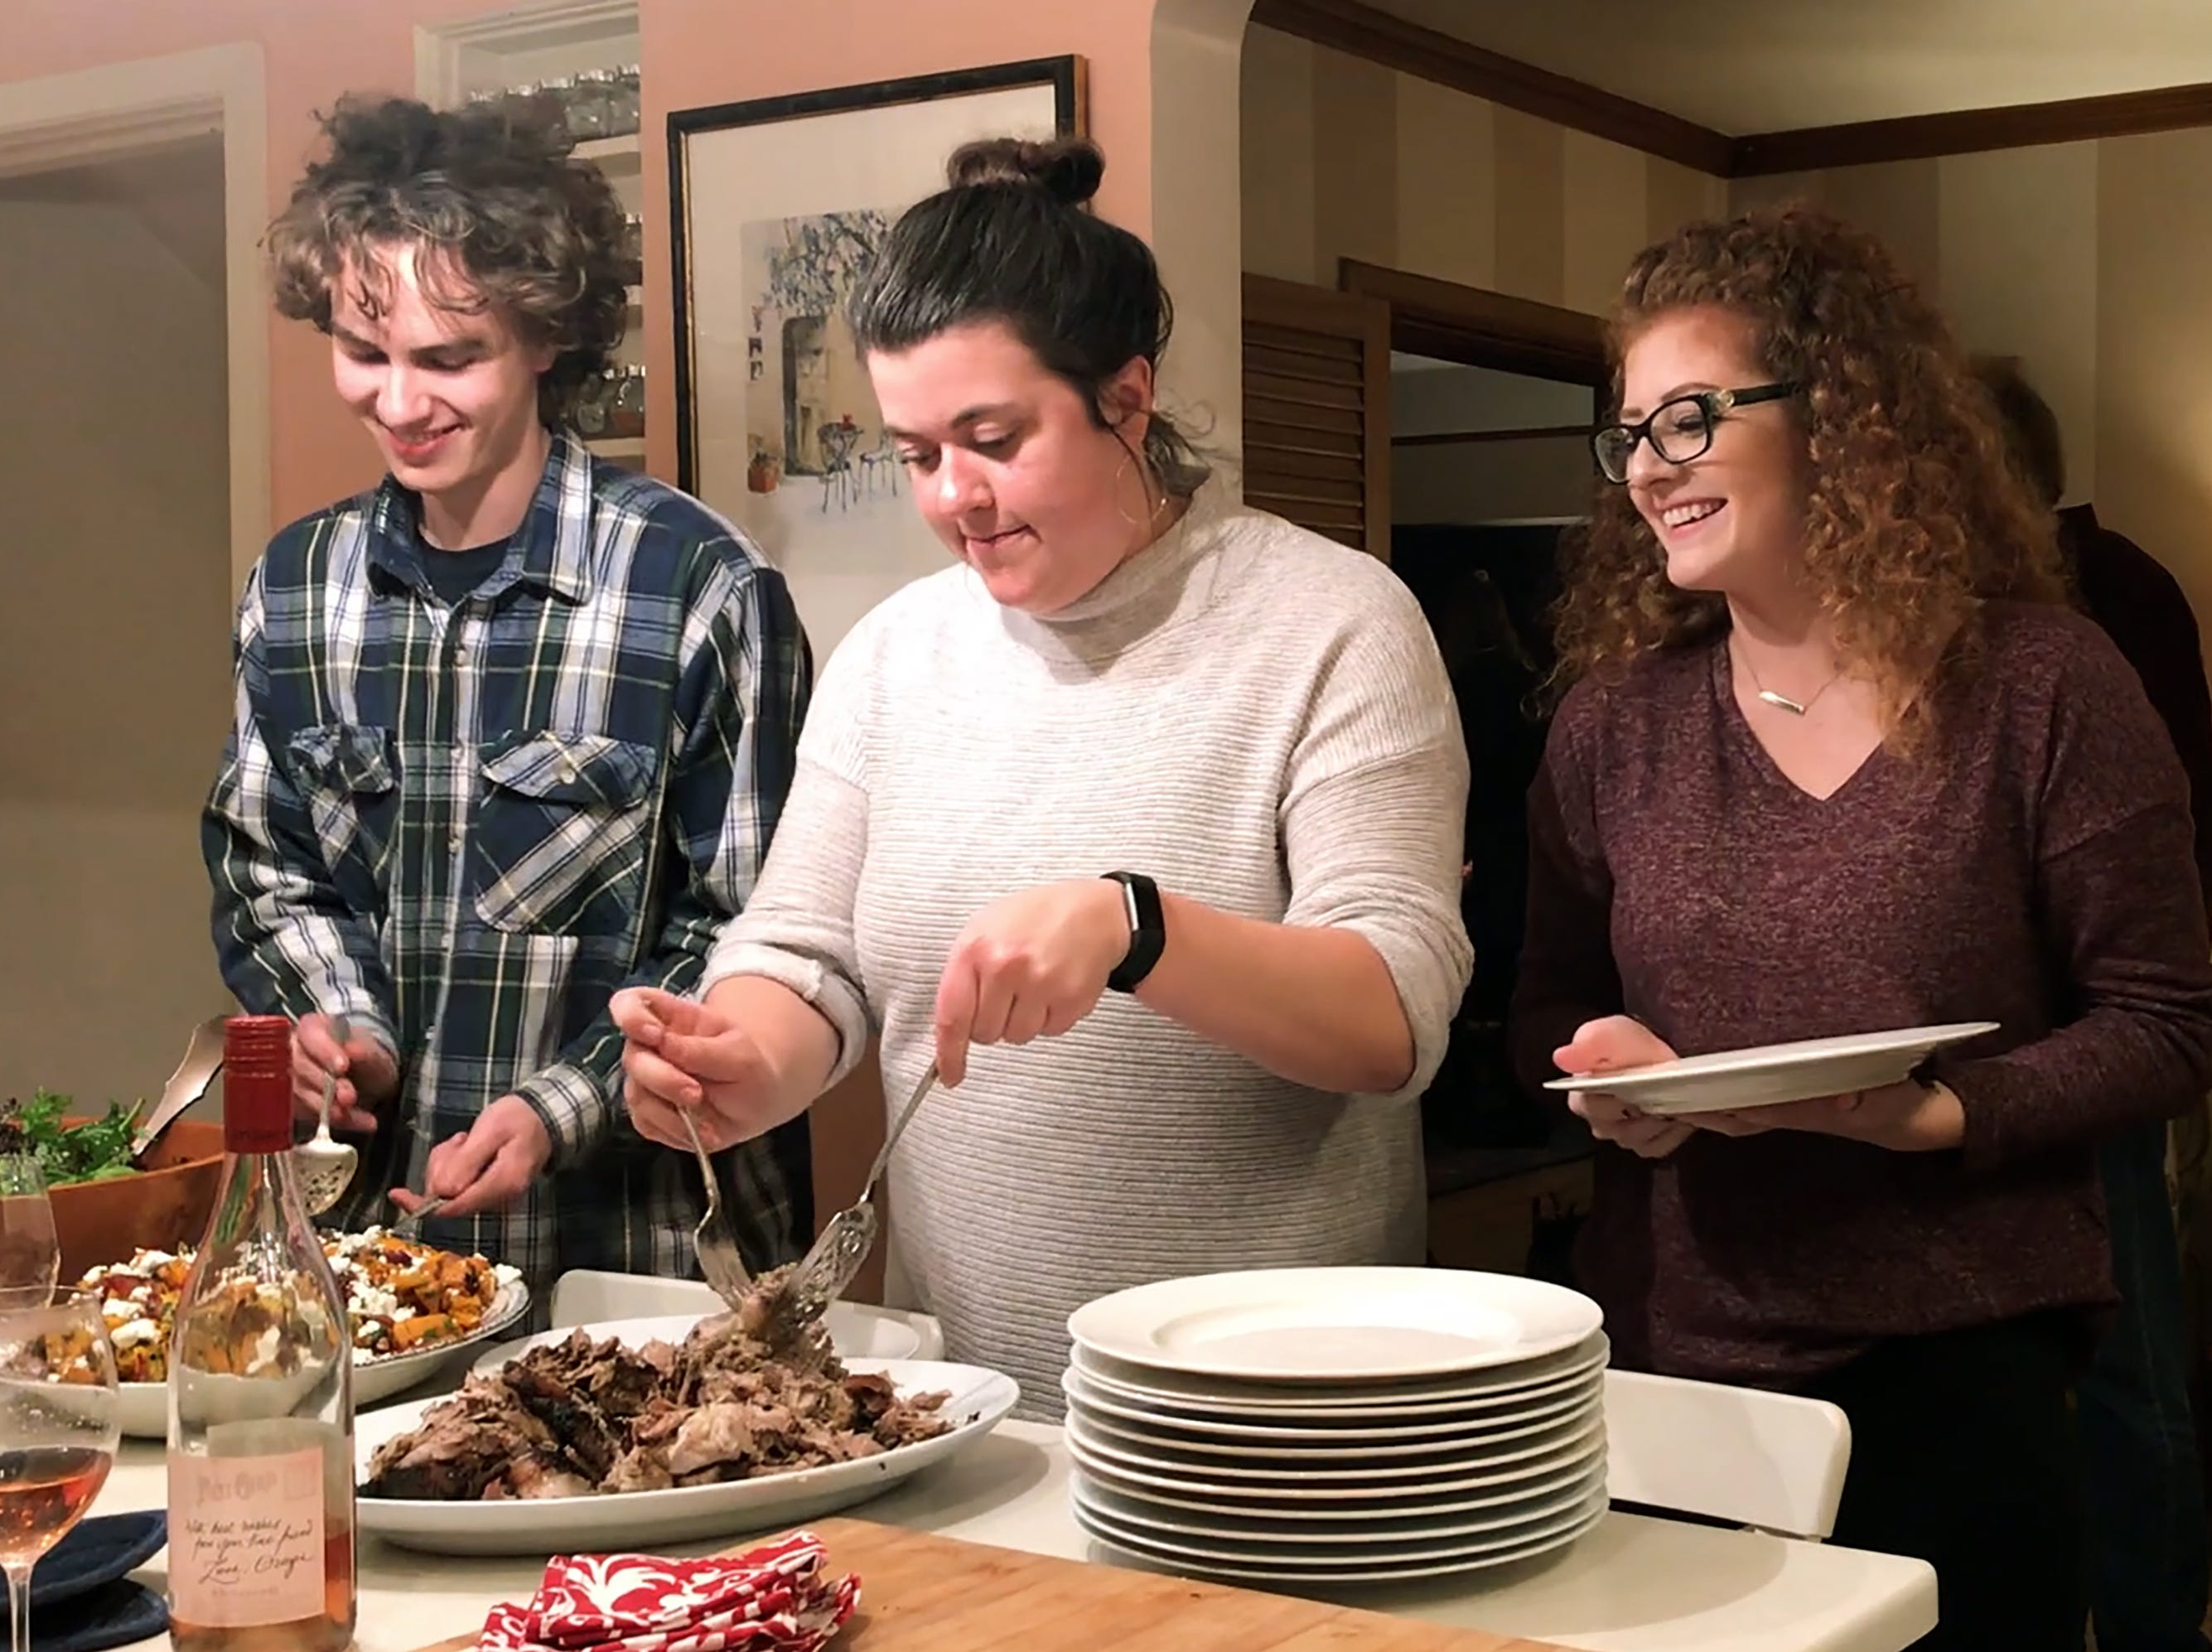 Dinner guests serve themselves a dinner prepared by R. Stuart & Co. cofounder, Maria Stuart on Nov. 7, 2018, in McMinnville.